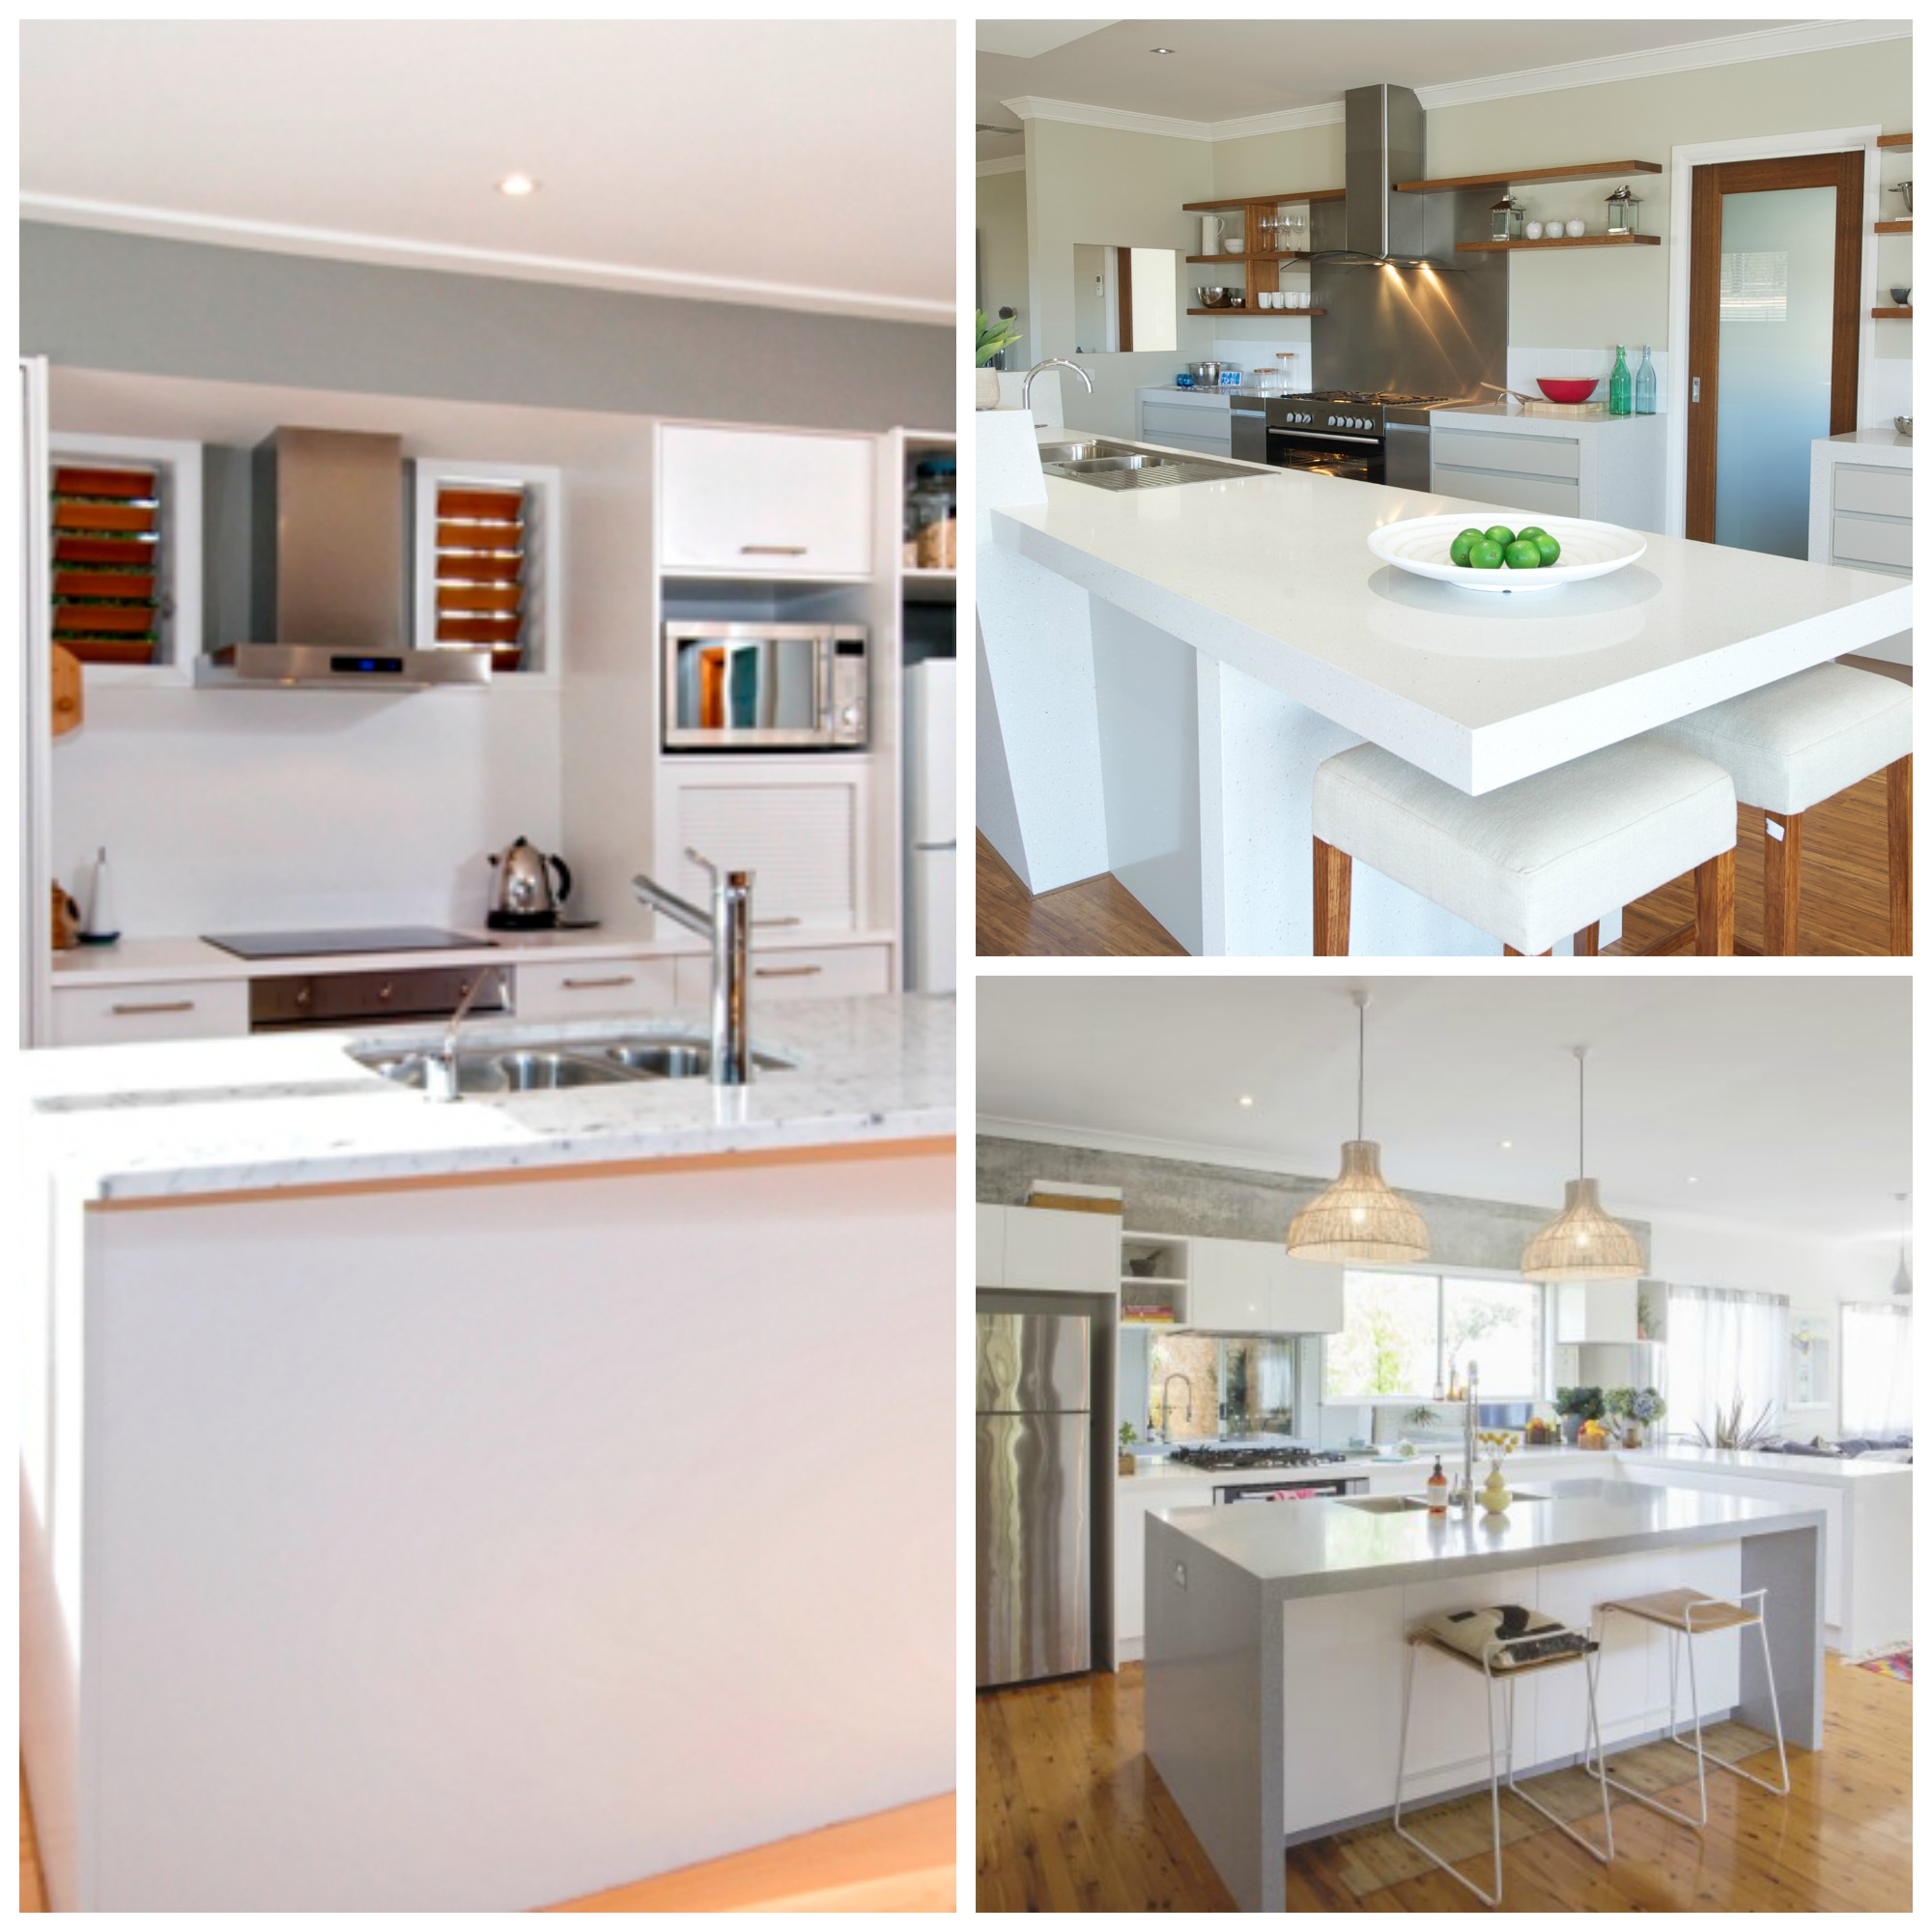 Kitchen Laminate Benchtops Kitchen Benchtop Brisbane Benchtops Kitchen Benchtops